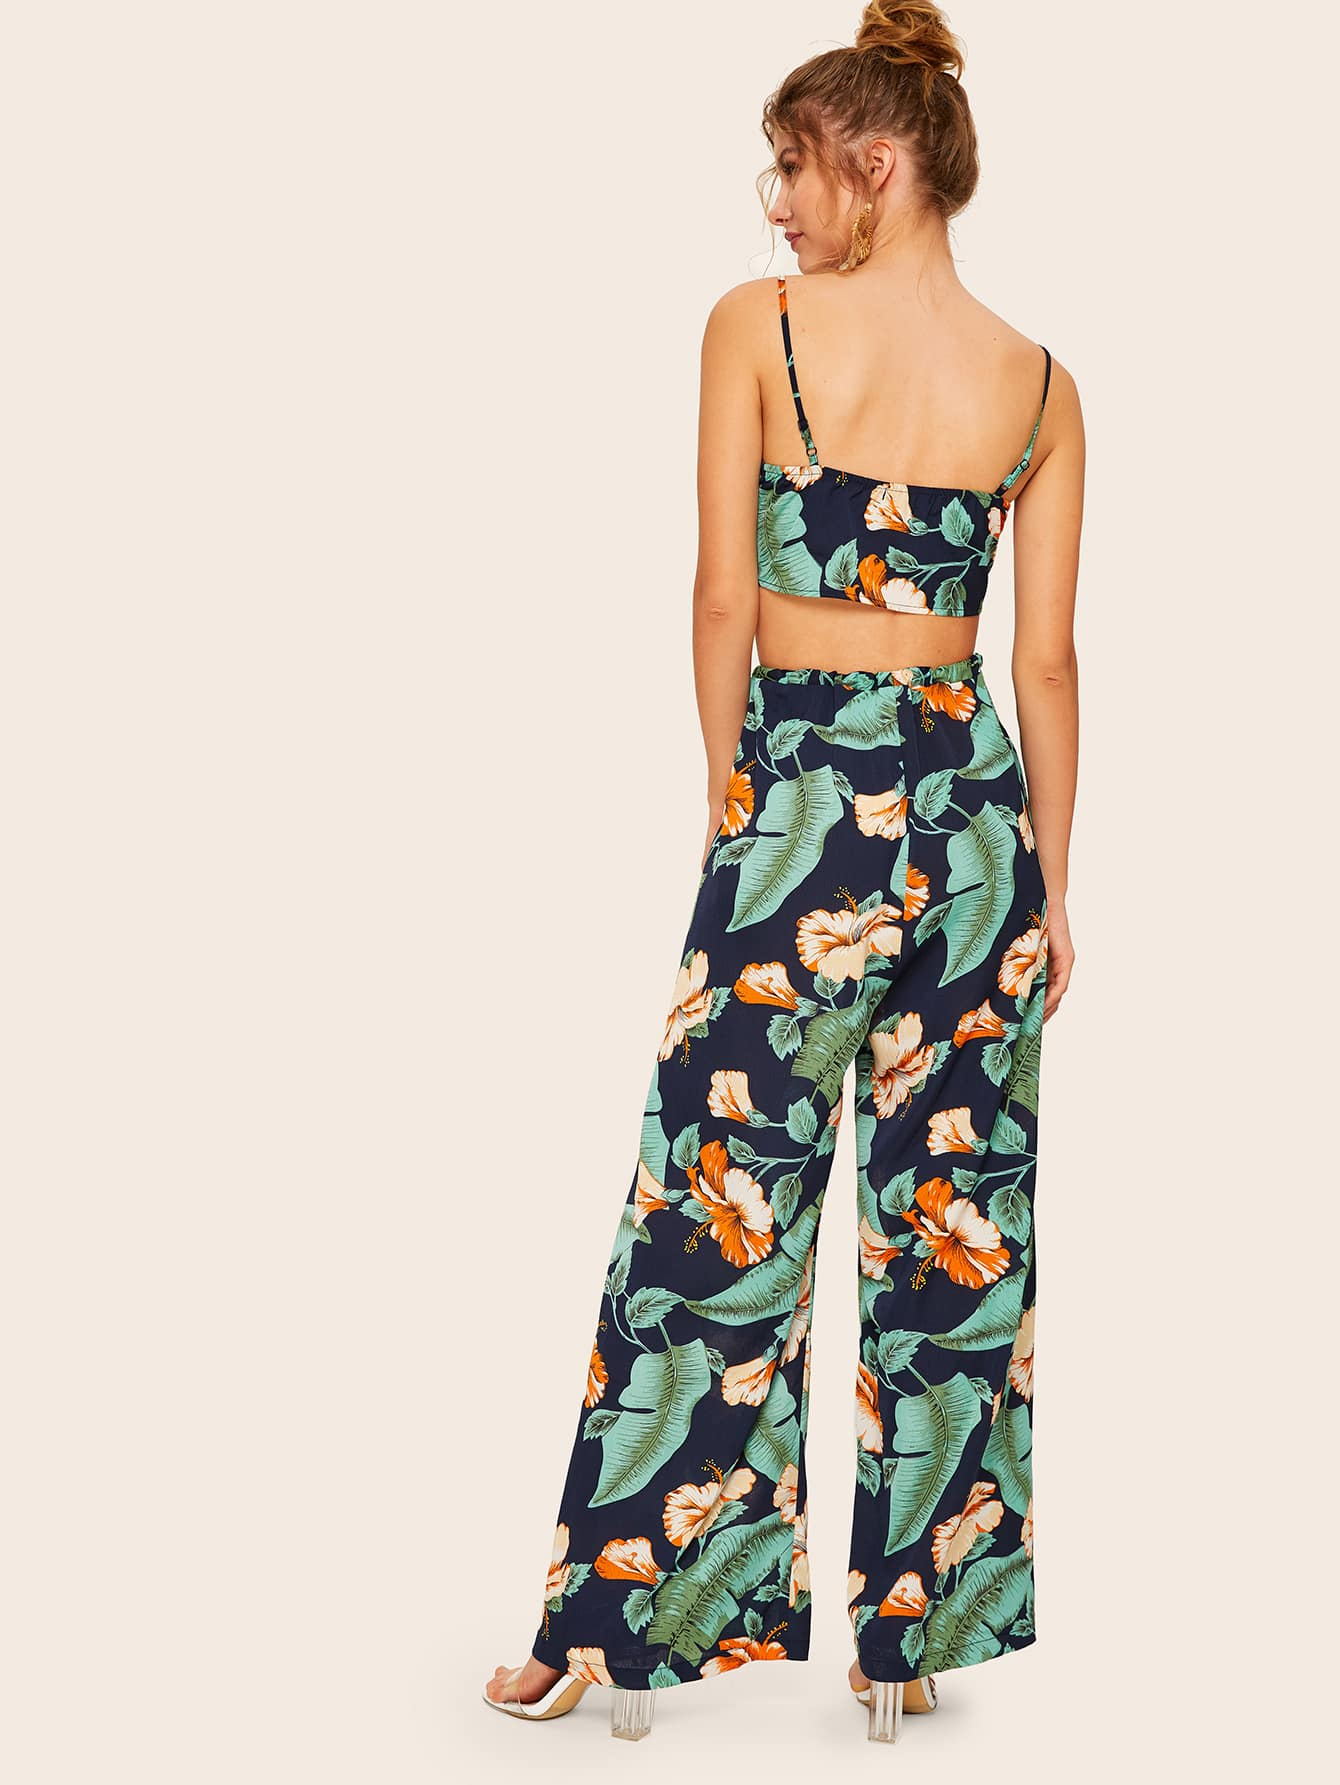 Knot Front Cami Top and Wrap Split Pants Set - FLJ CORPORATIONS